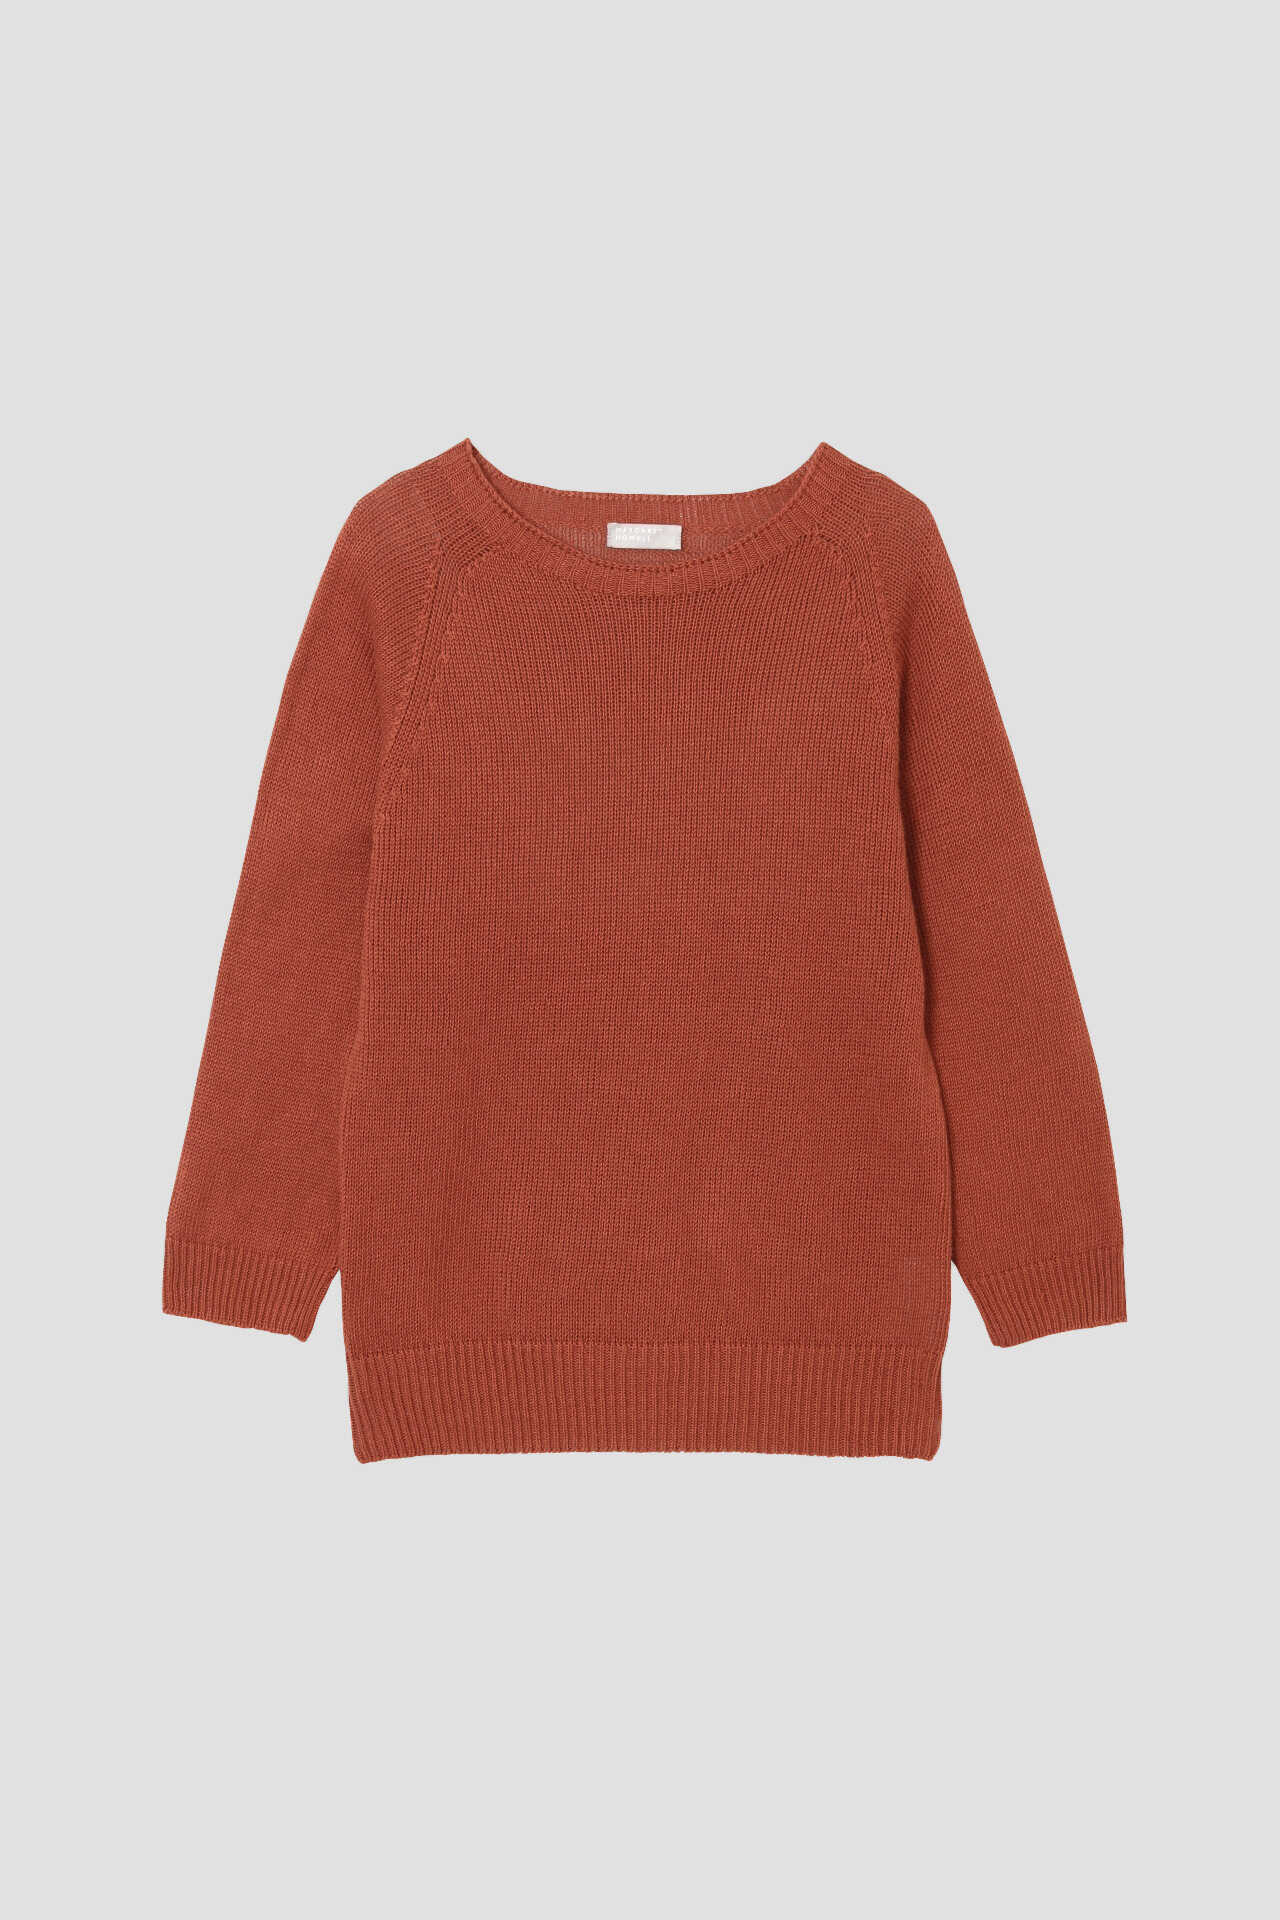 LINEN COTTON CREW NECK10